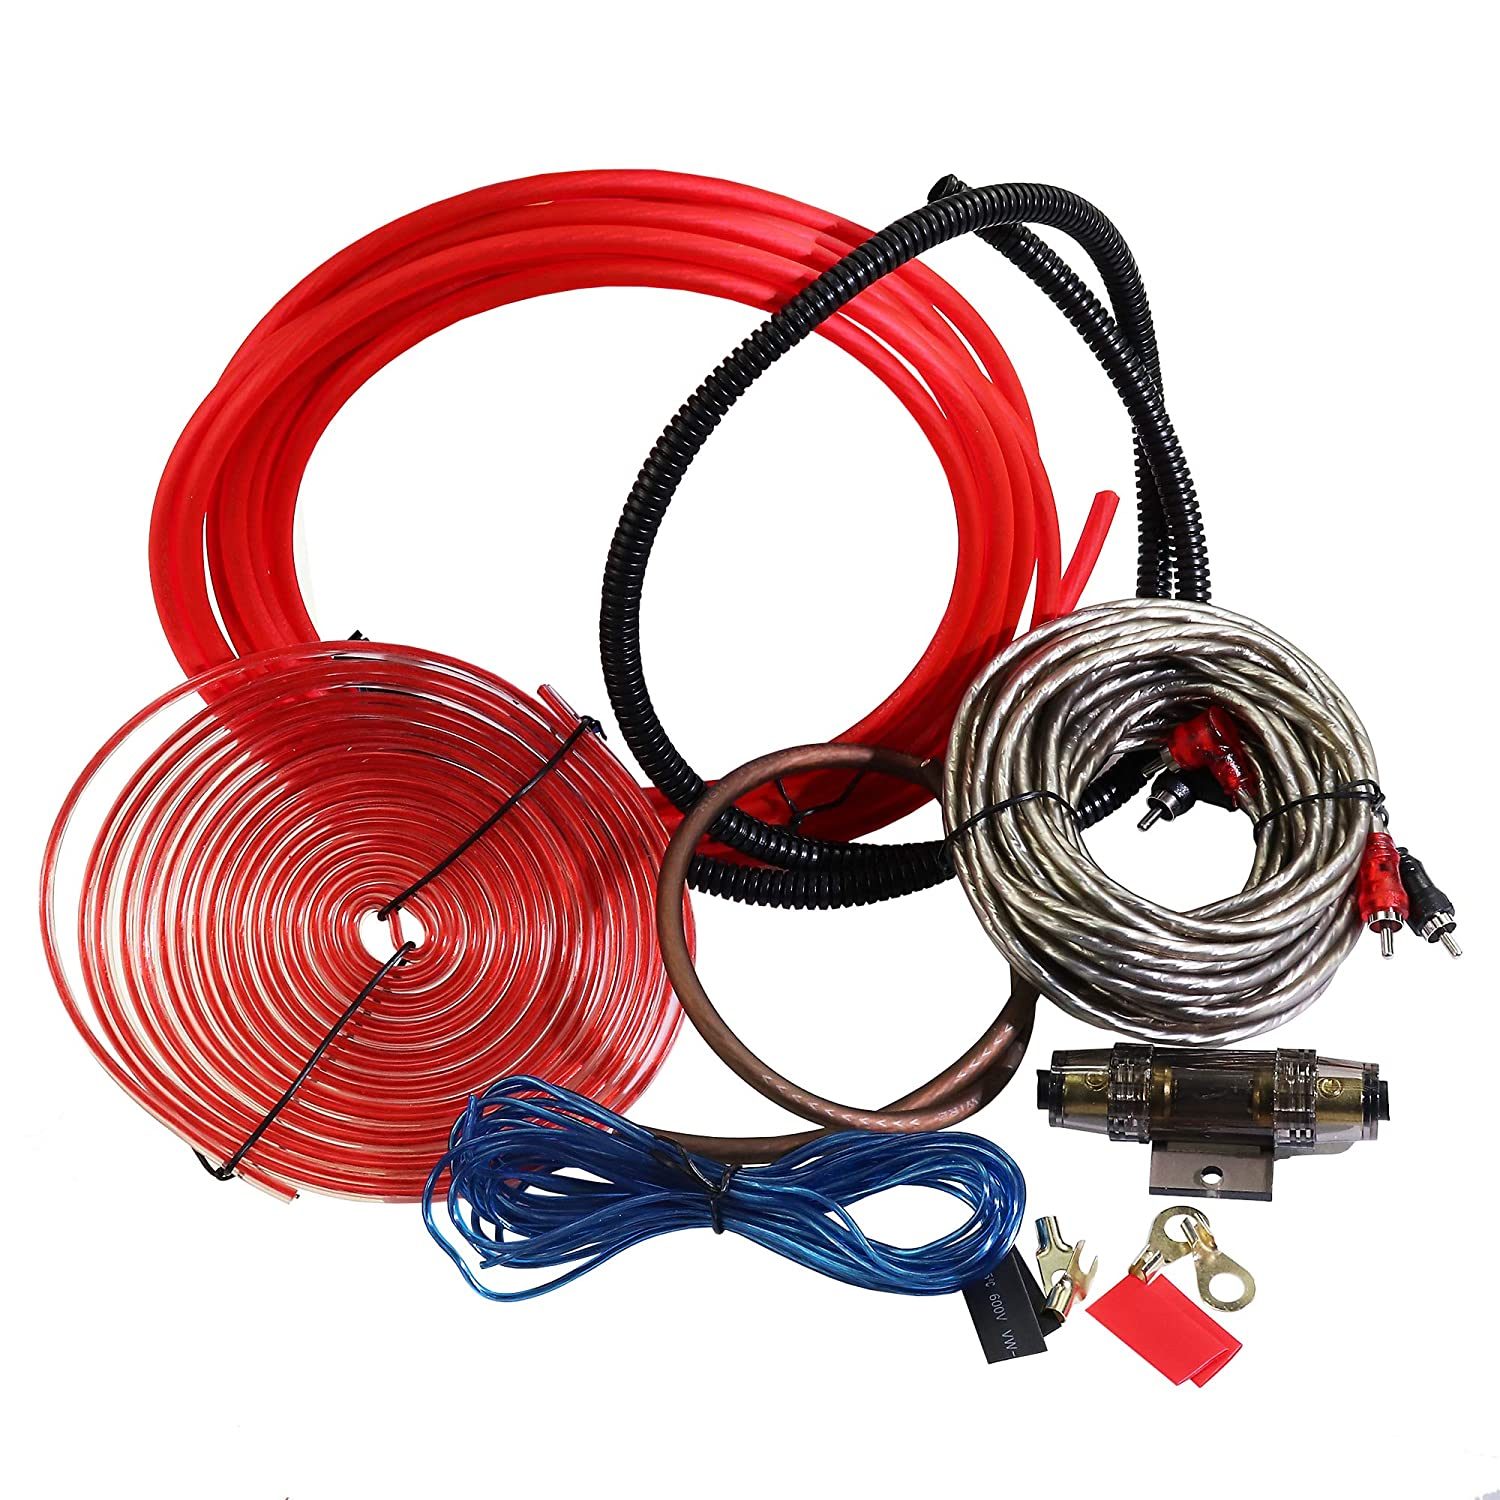 Welugnal Car Amplifier Wiring Kit Ground RCA Cable,Speaker Wire 8 Gauge Complete Amp Kit Amplifier Installation Wiring Wire Kit,Includes Power Remote Cable Split Loom Tubing and Fuse Holder